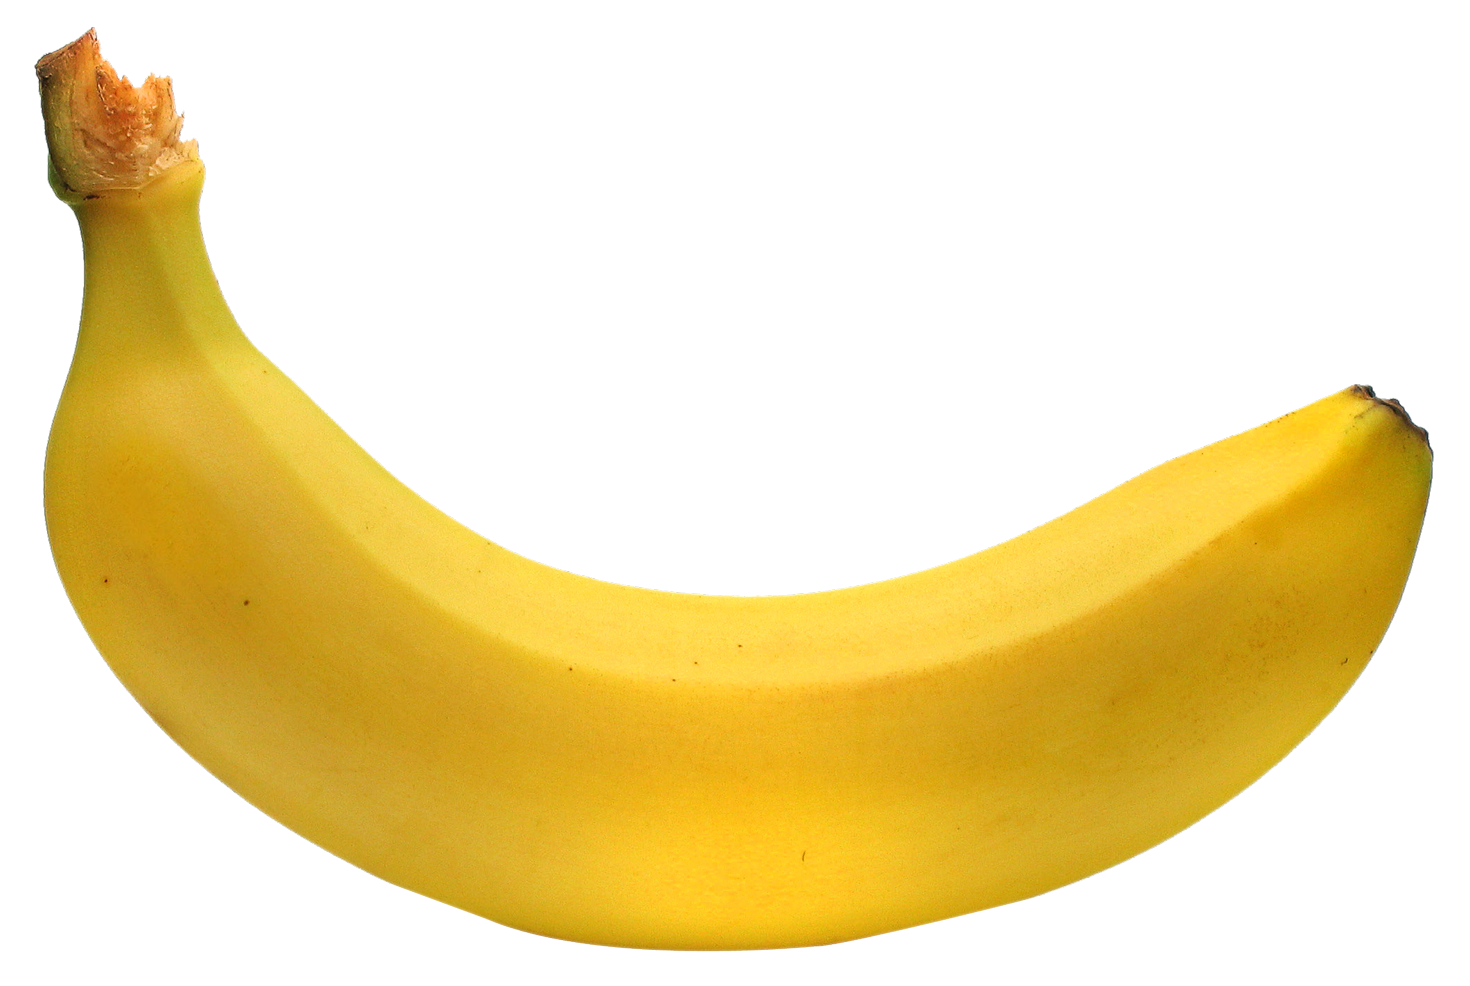 clip transparent stock Bananas vector ripe. Images of png spacehero